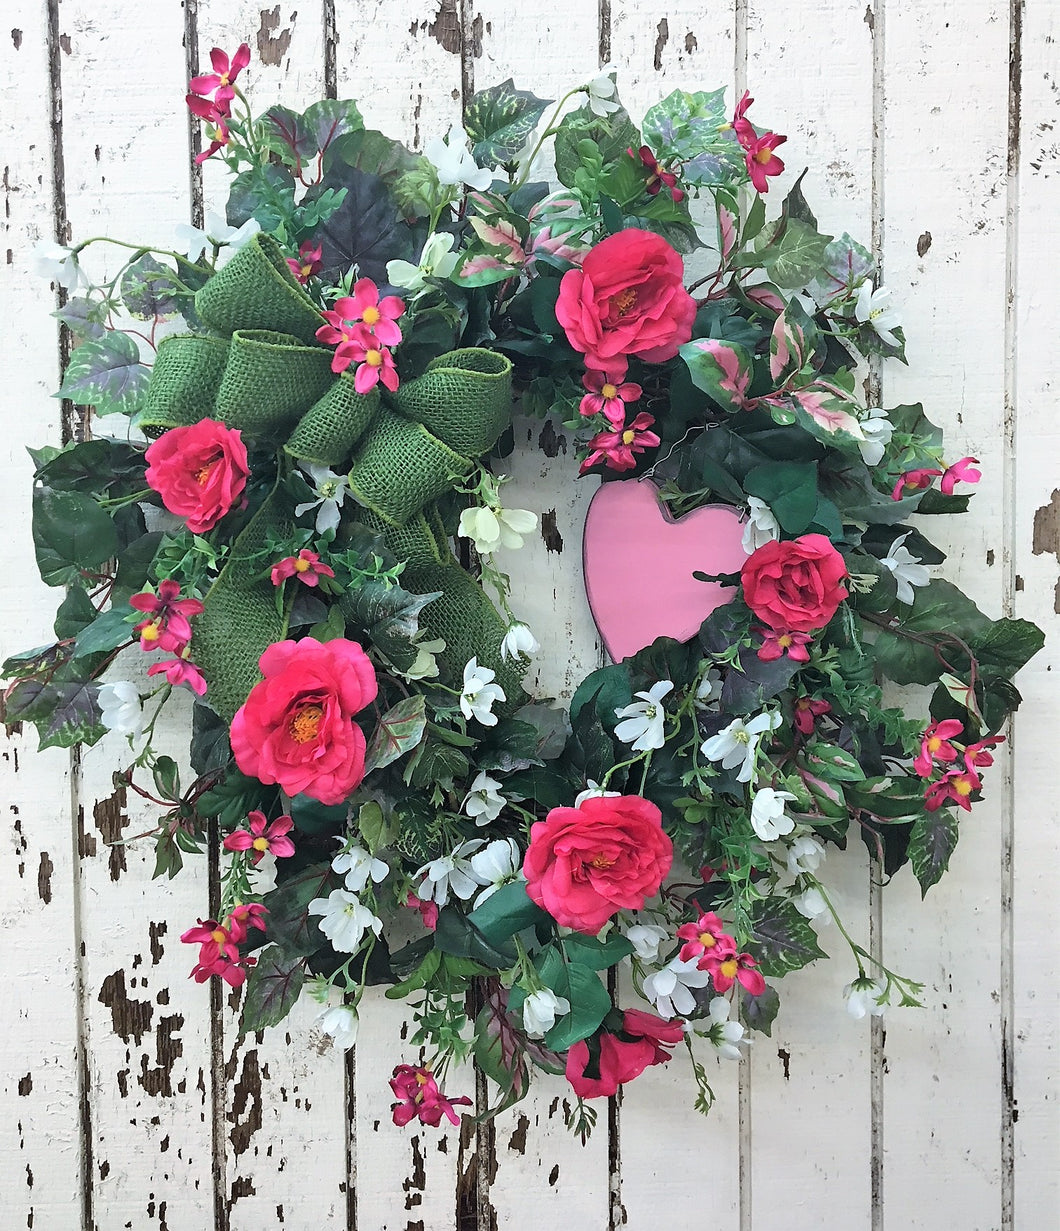 Gallery/Val11 - April's Garden Wreath